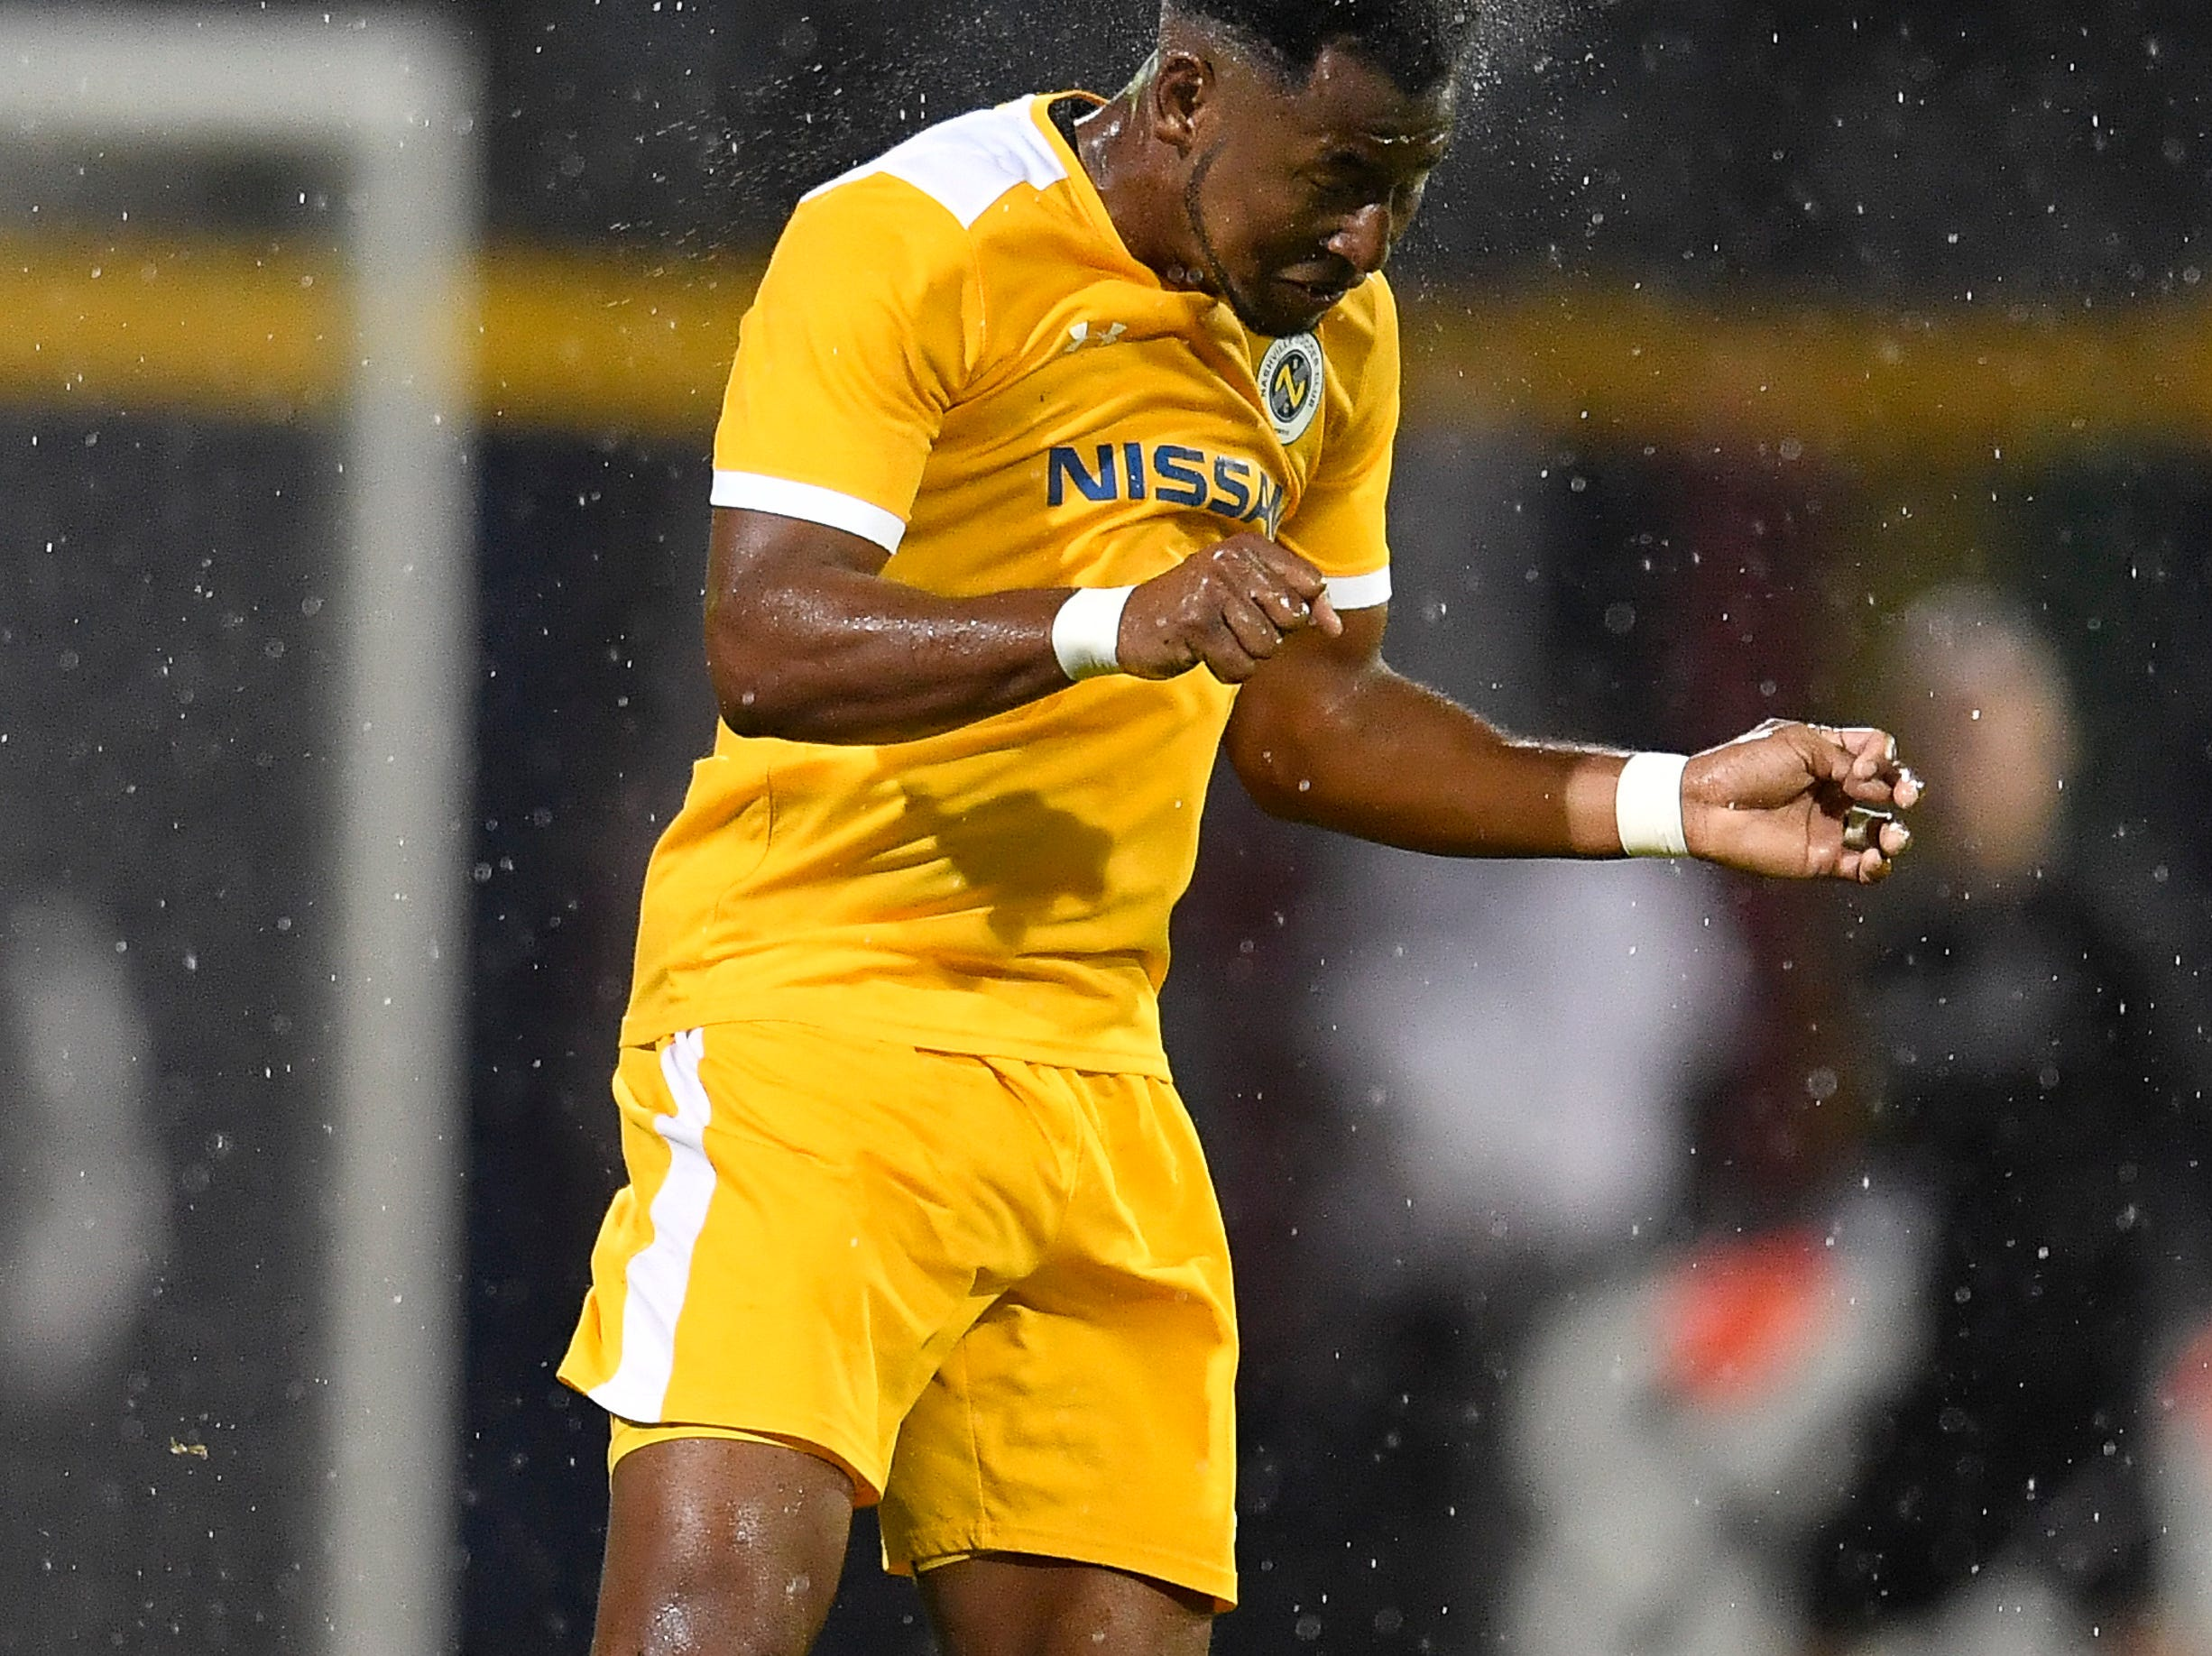 Nashville SC defender Darnell King (21) heads the ball during the second half of their match against the New York City FC at First Tennessee Park Friday, Feb. 22, 2019 in Nashville, Tenn.